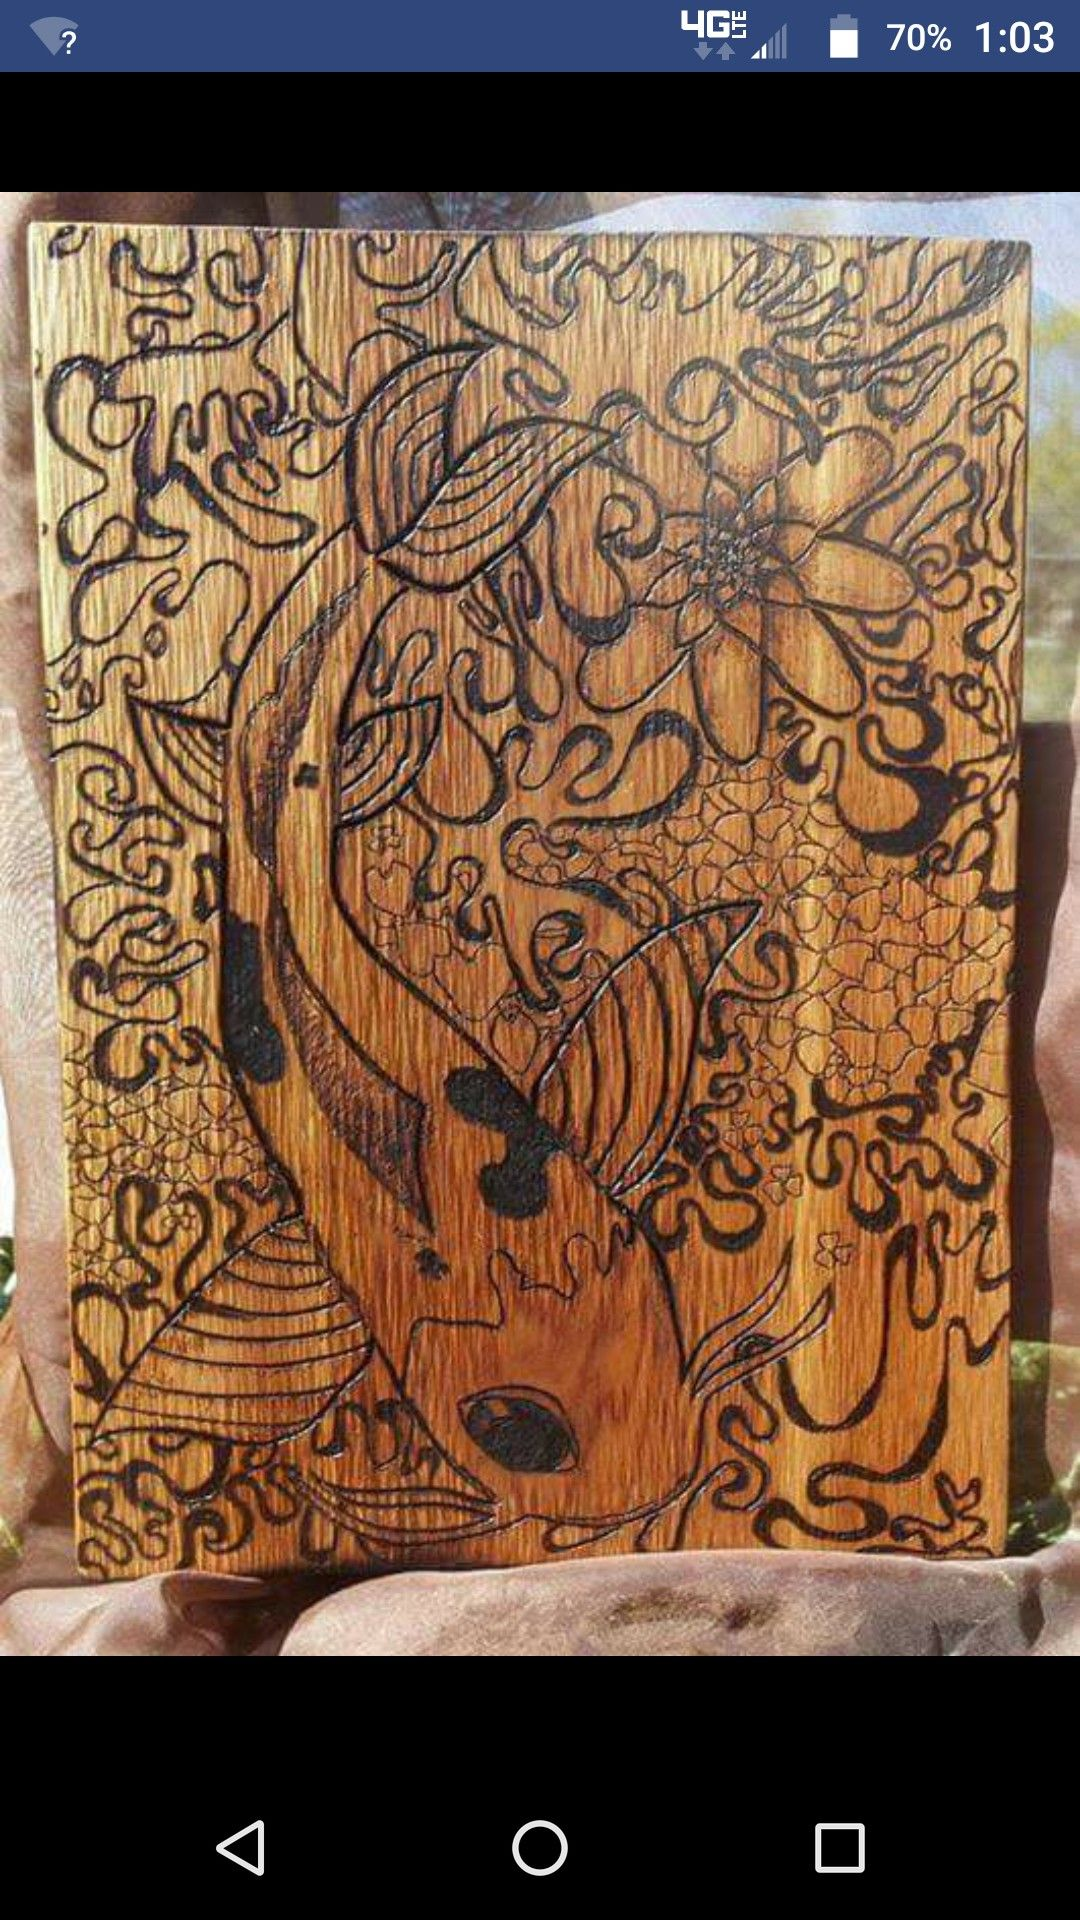 Koi design burnt into wood. Beautiful decoration.